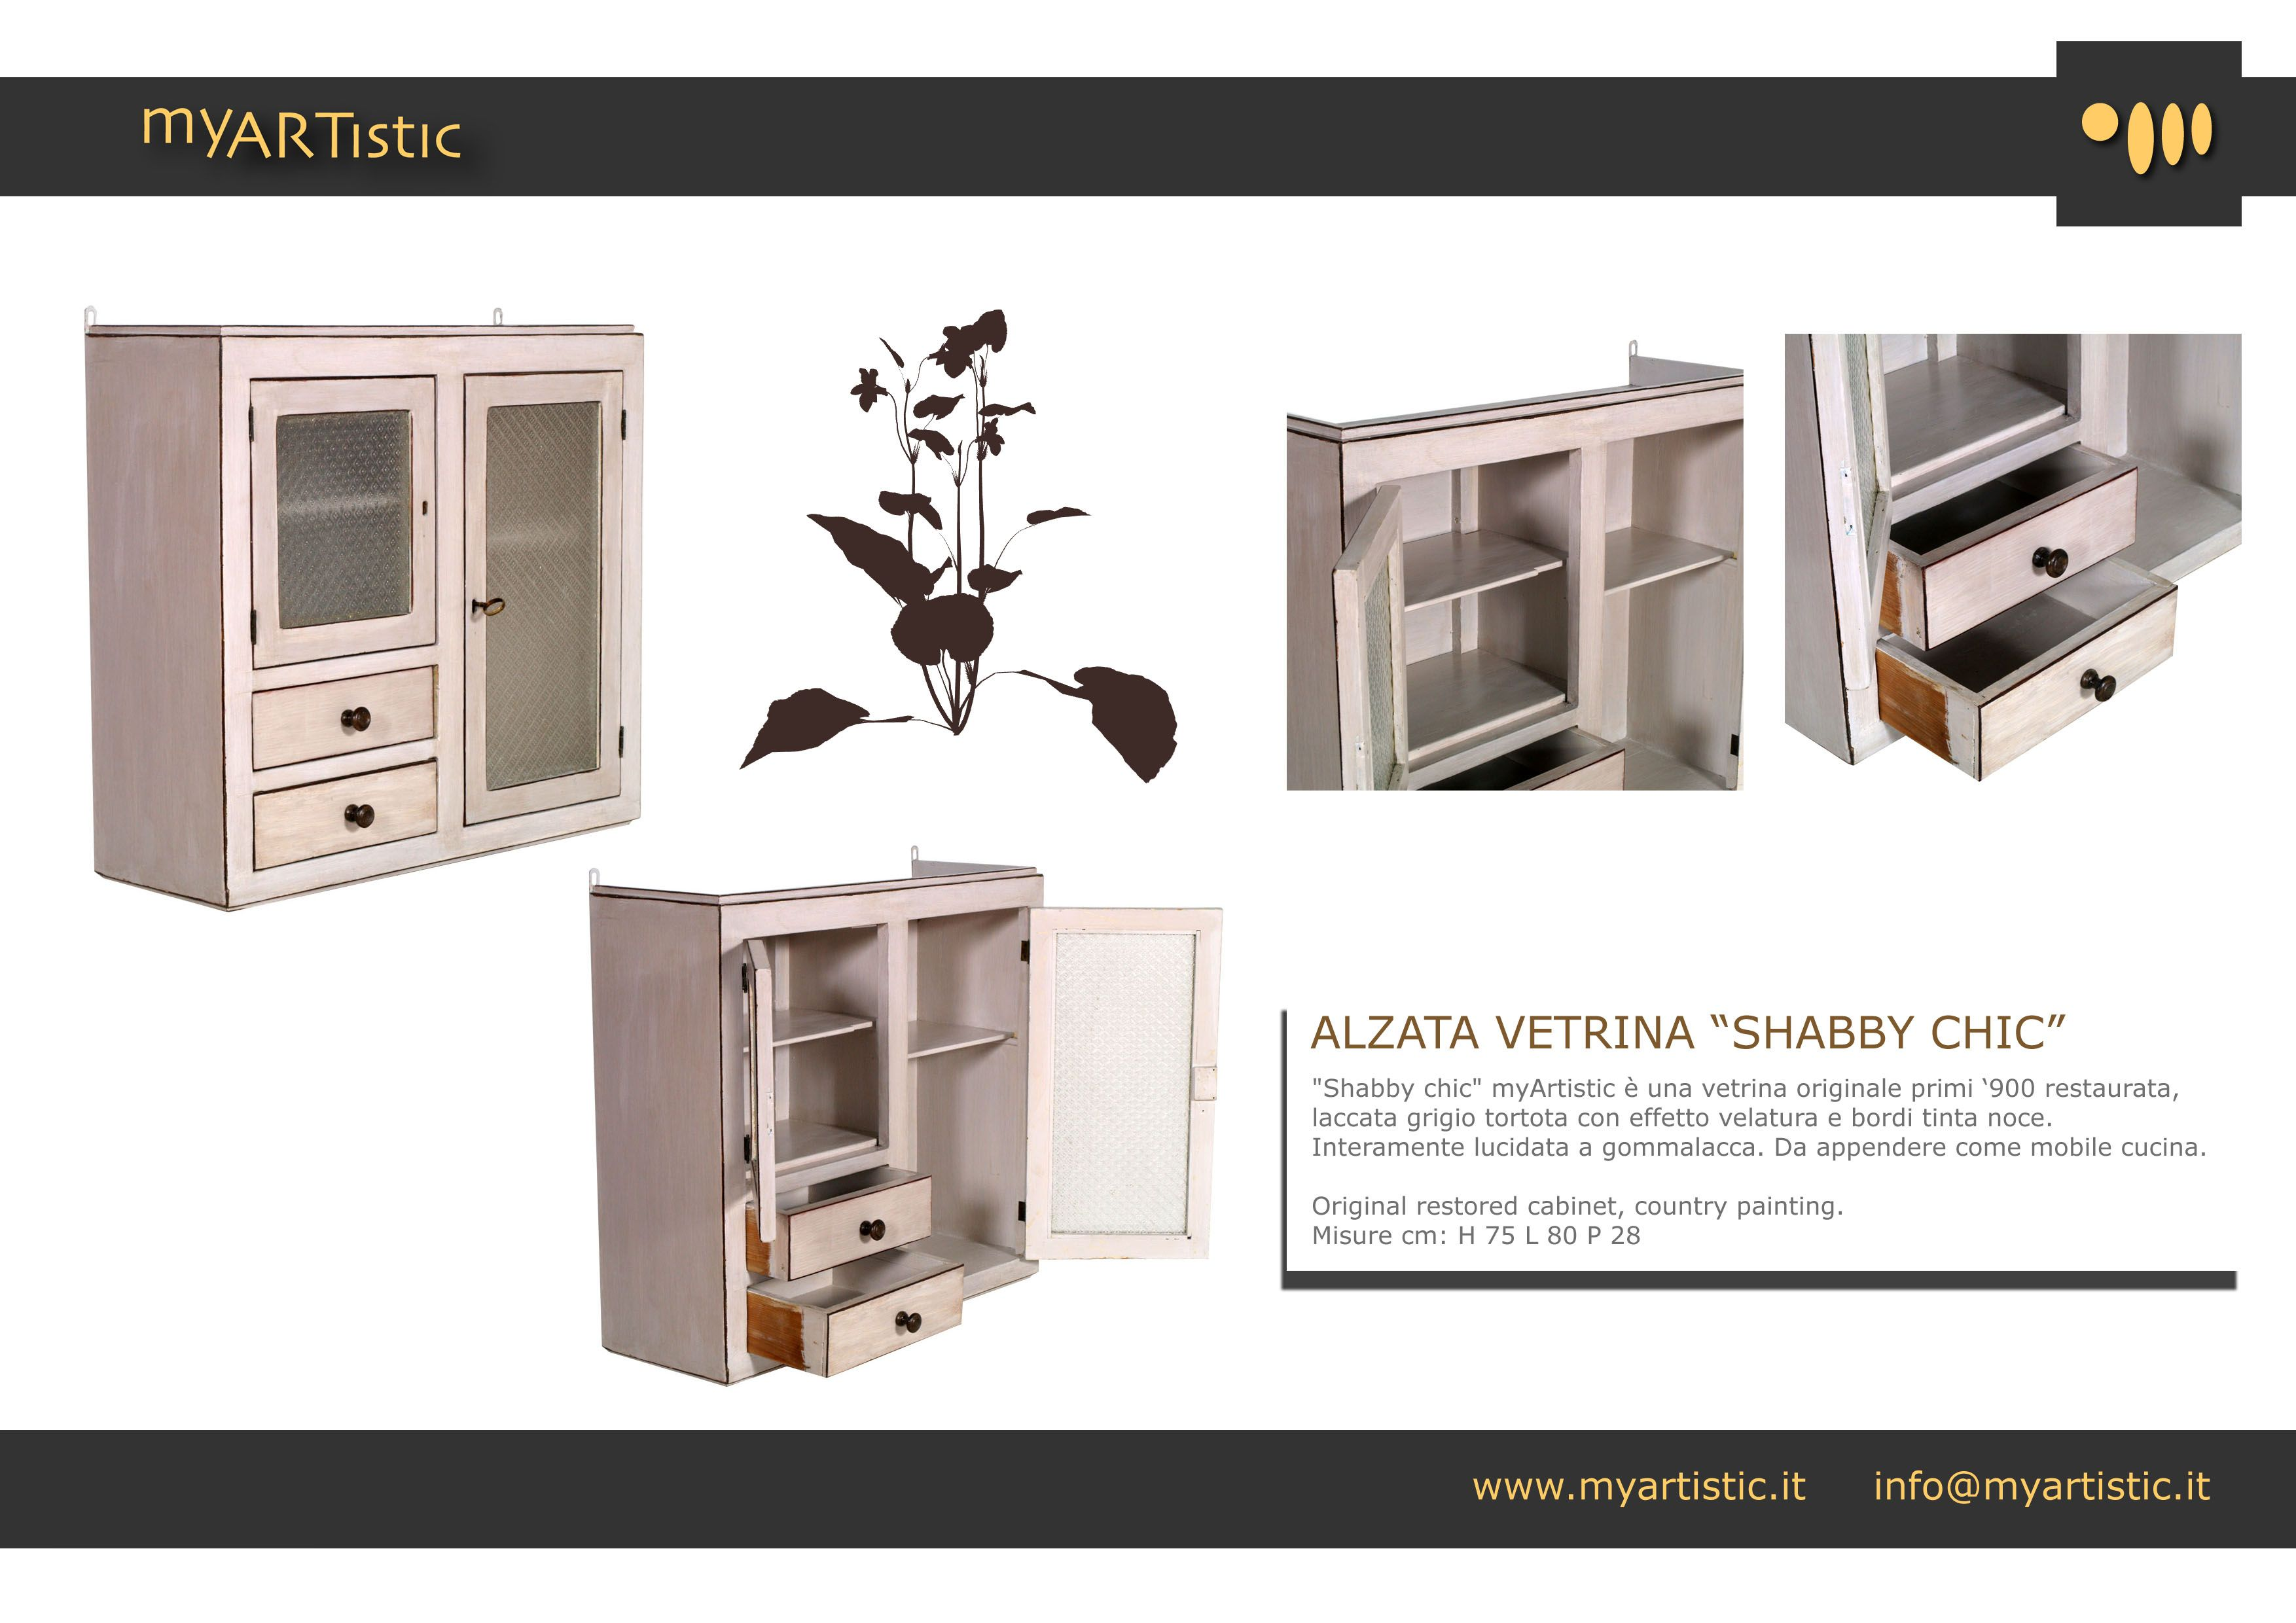 Original restored shabby chic cabinet, with country painting. By atelier myArtistic www.myartistic.it